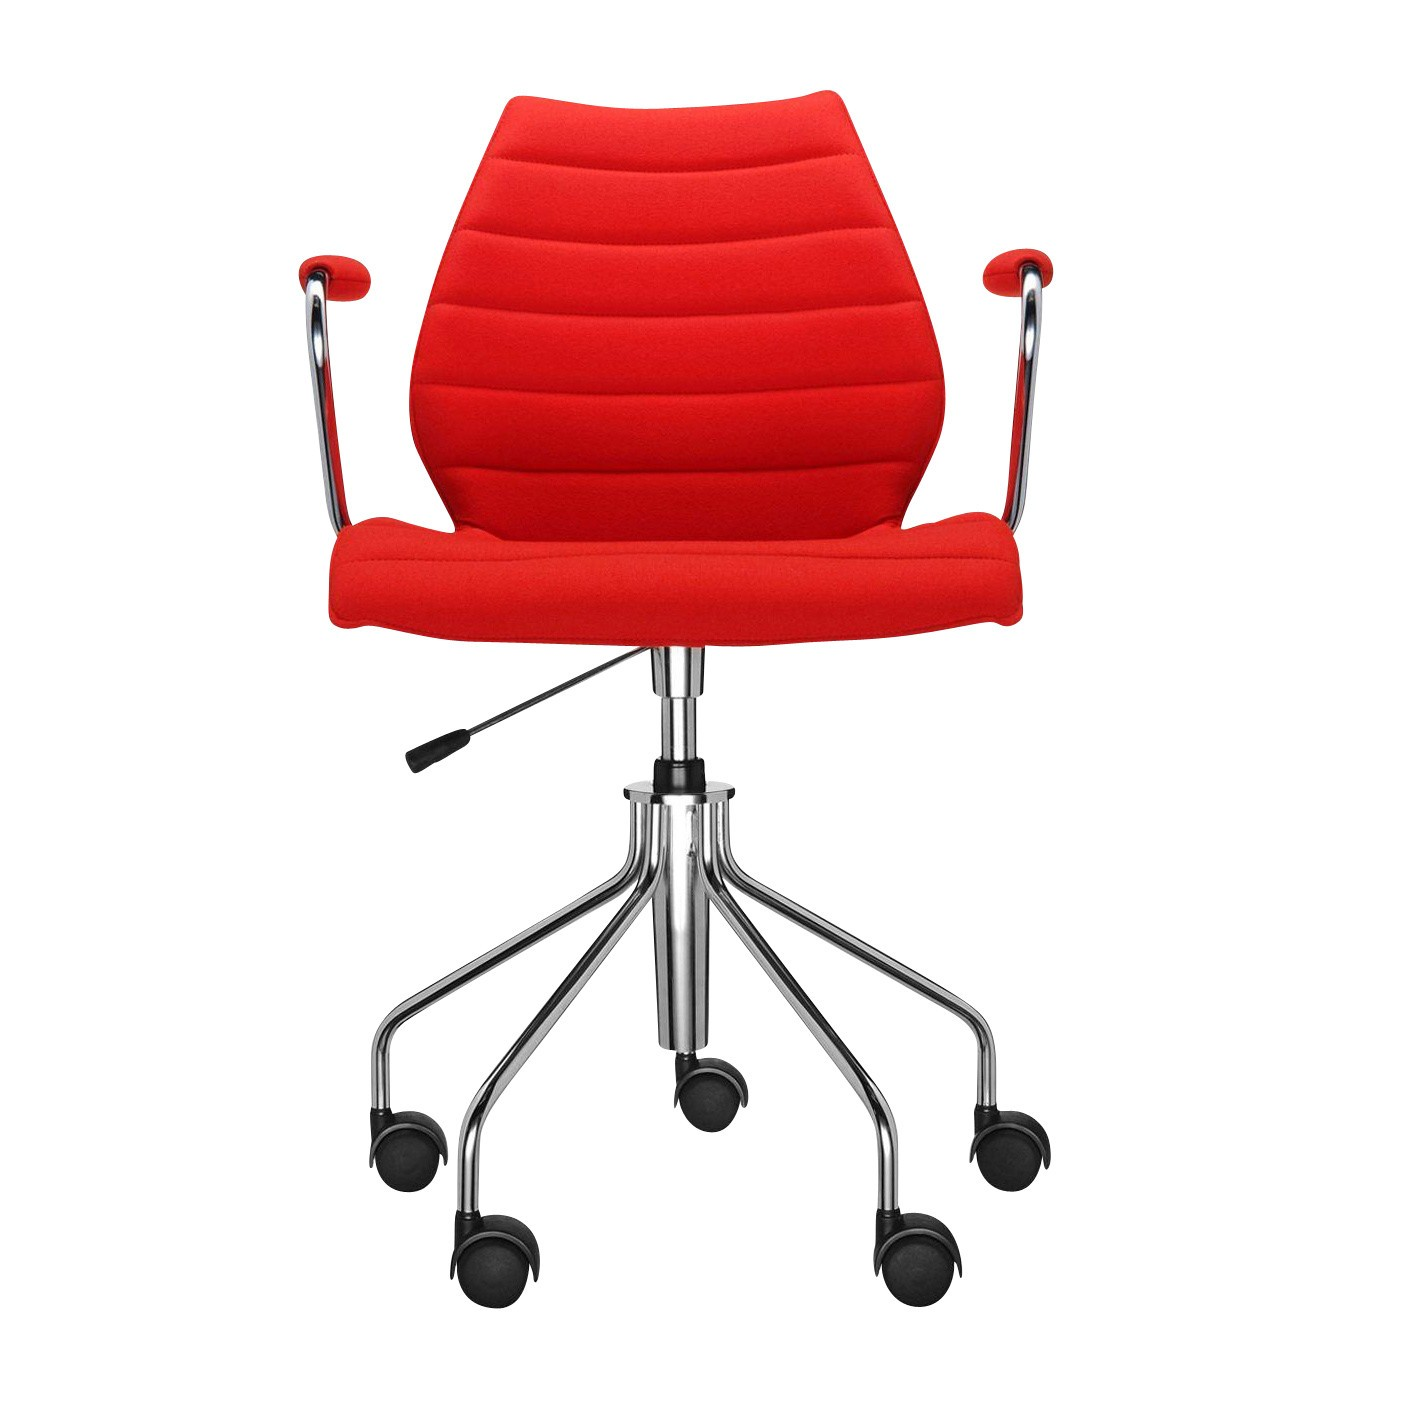 Kartell Maui Soft Office Chair With Armrests Red Fabric